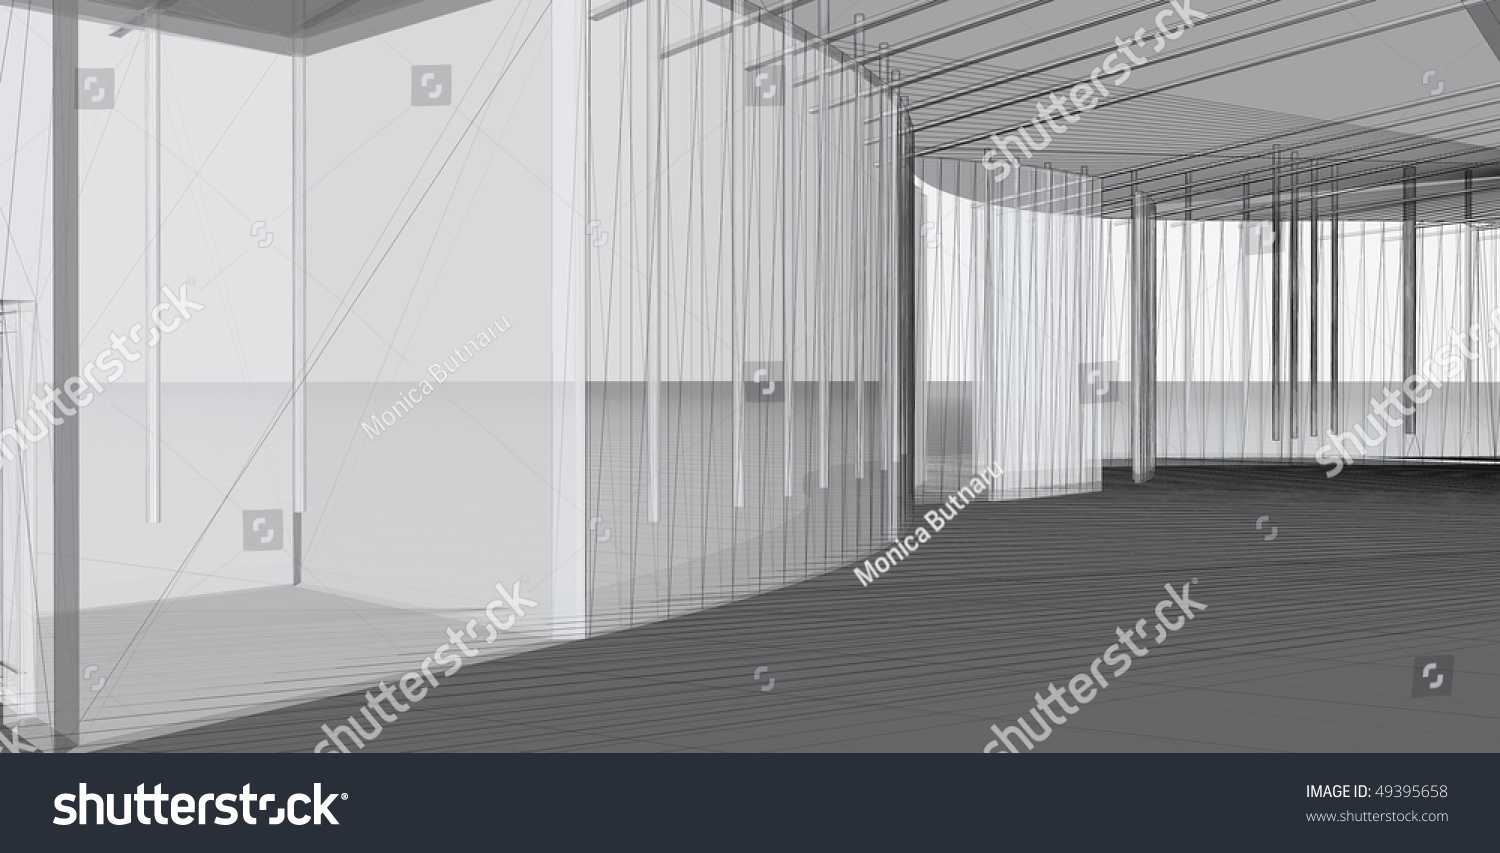 Abstract architectural d construction concept modern